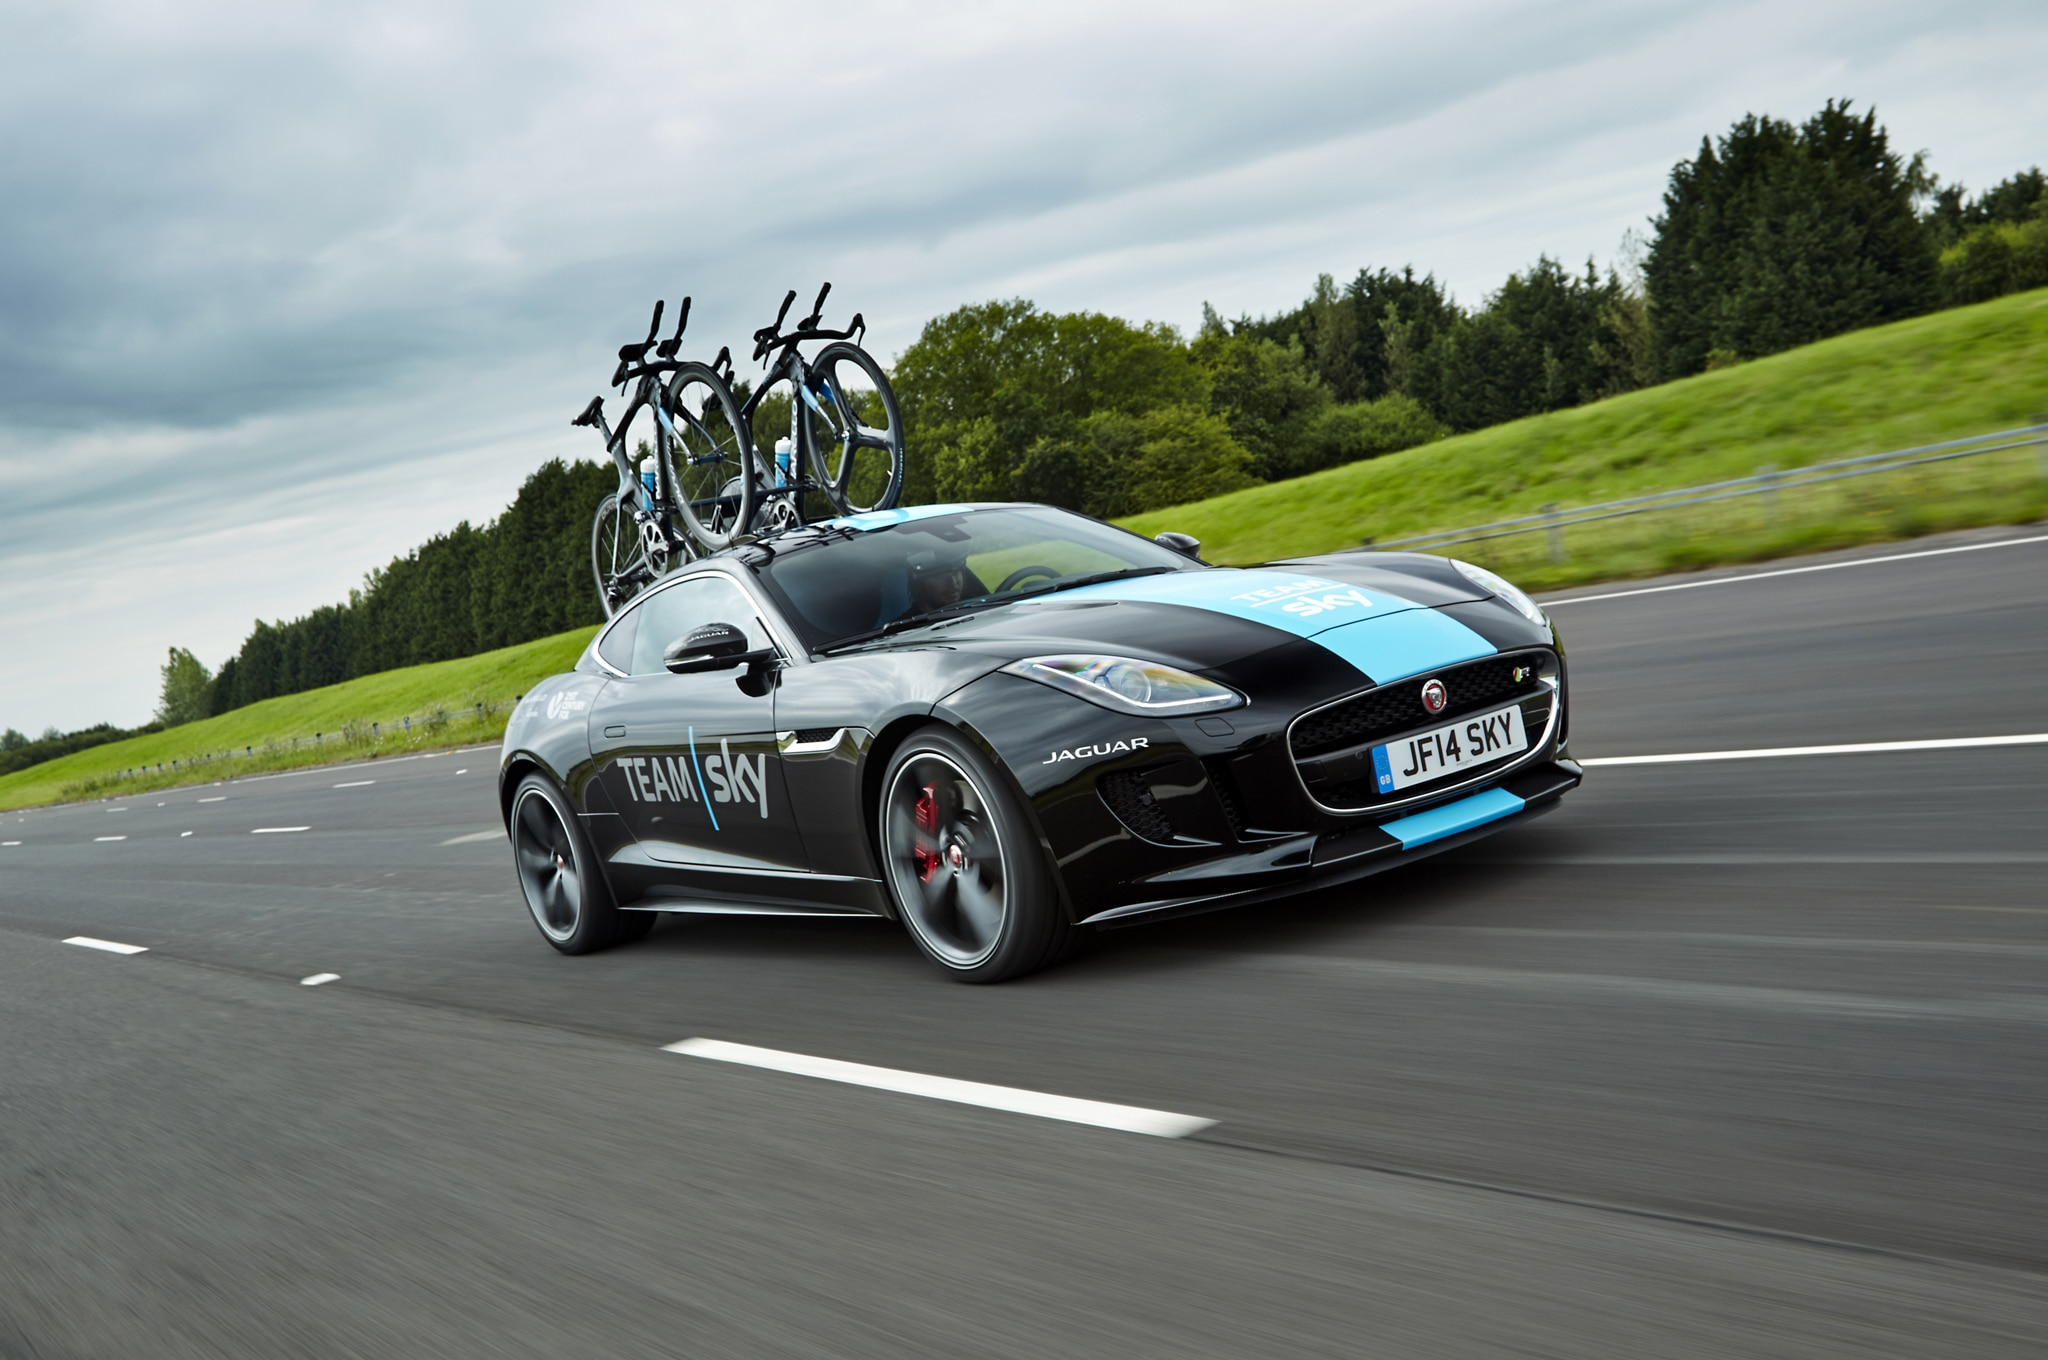 Jaguar F Type R Coupe Team Sky 05 Front Three Quarter1